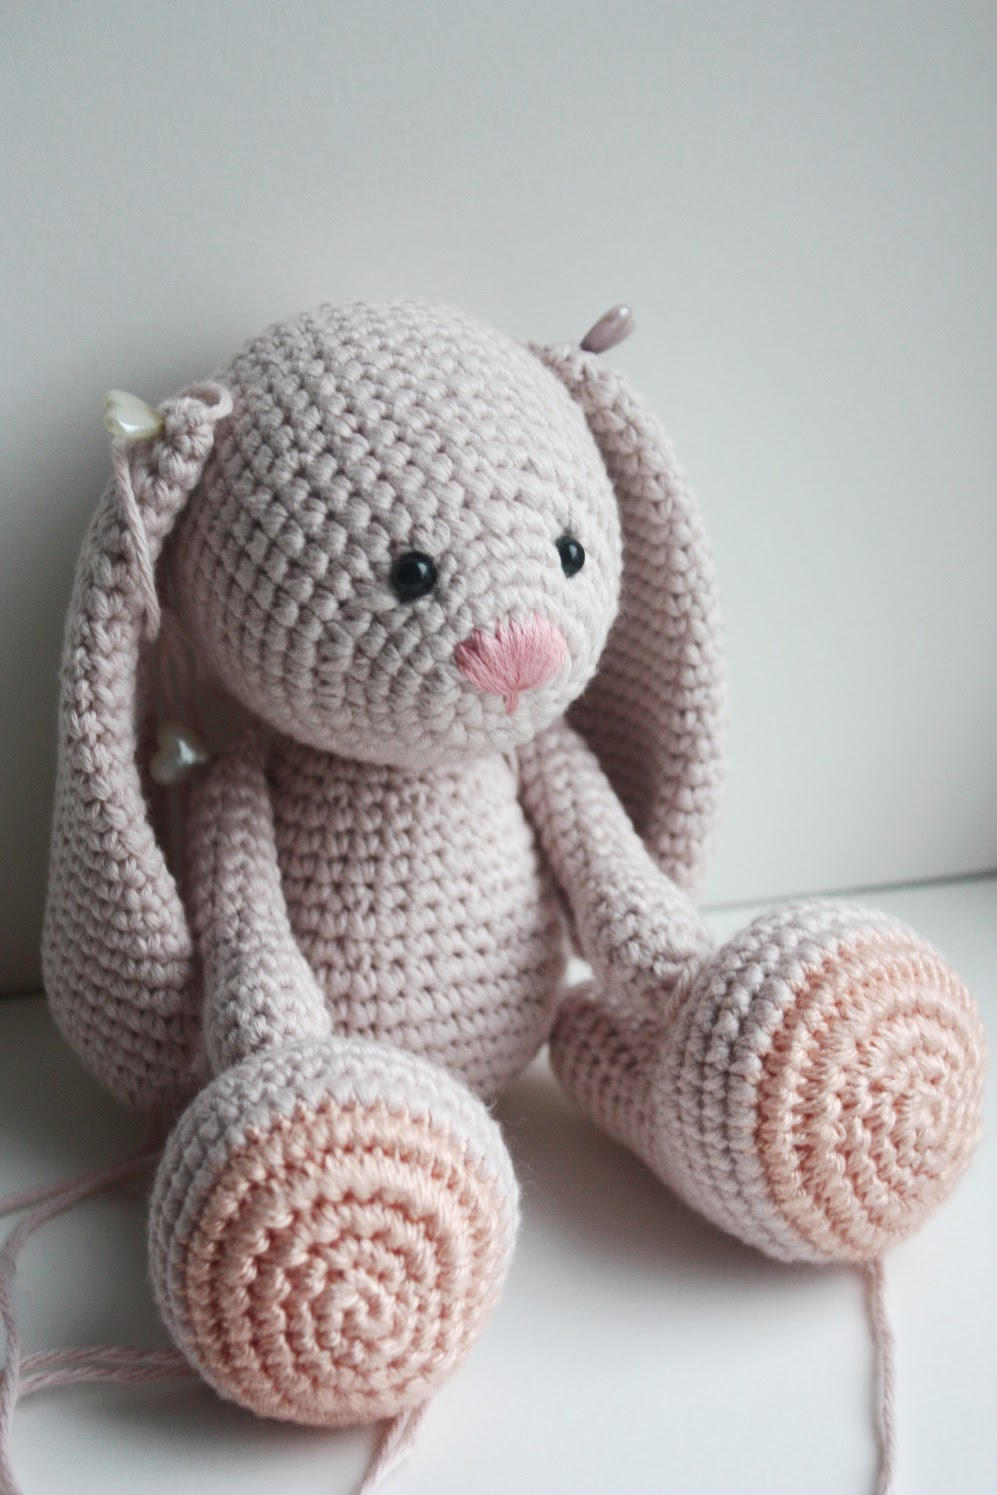 Crochet Patterns Rabbit : pattern available here amigurumi bunny pattern